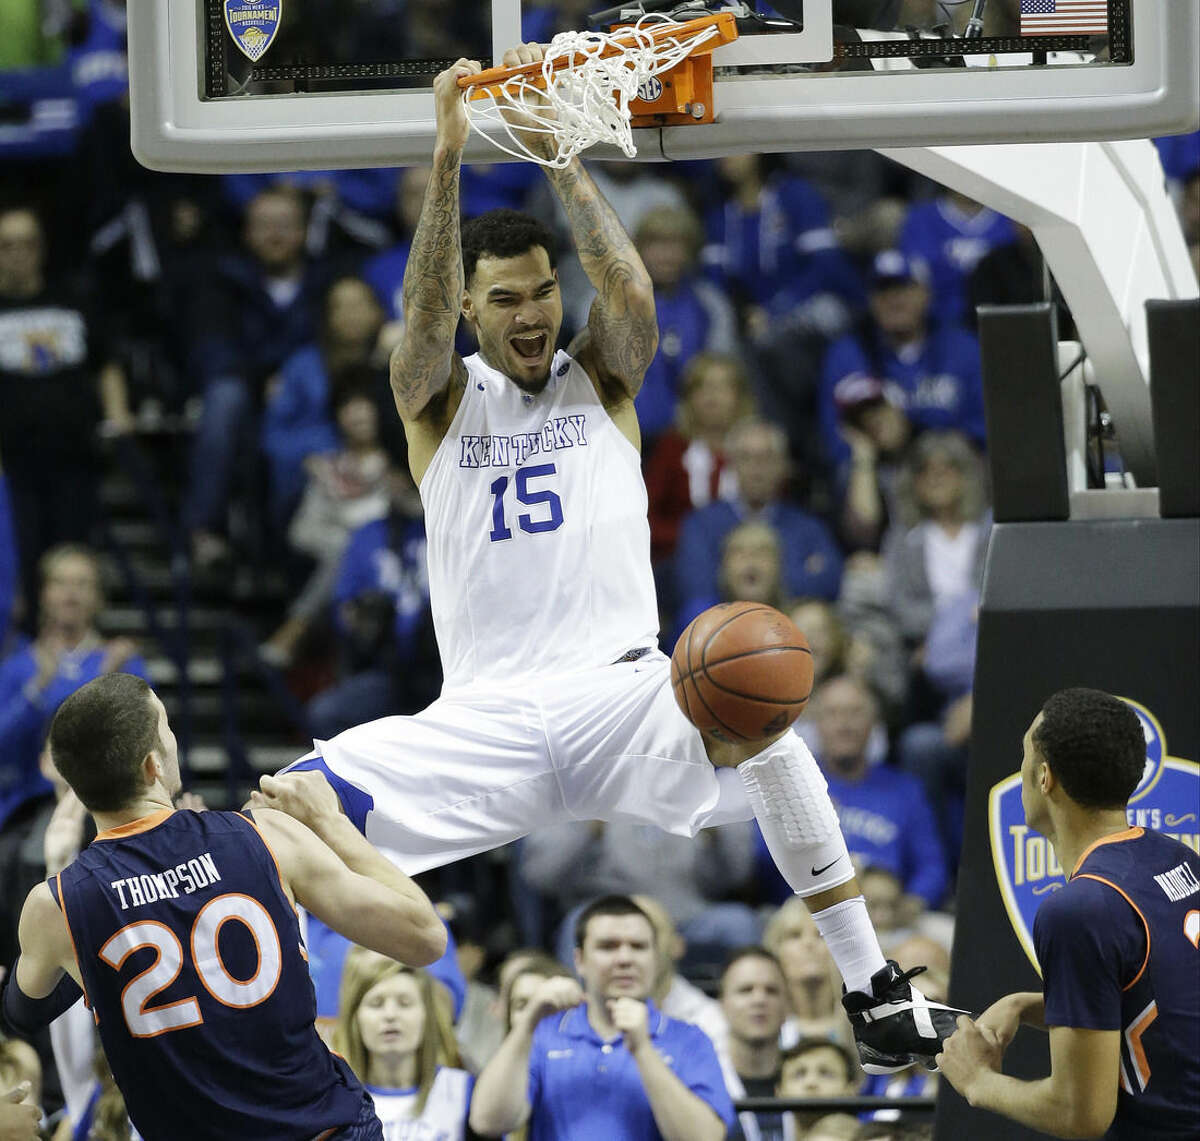 FILE - In this March 14, 2015, file photo, Kentucky forward Willie Cauley-Stein (15) dunks the ball as Auburn forward Alex Thompson (20) and Auburn guard Devin Waddell look on during the second half of an NCAA college basketball game in the semifinal round of the Southeastern Conference tournament in Nashville, Tenn. Cauley-Stein was selected to the AP All-America team, Monday, March 30, 2015. (AP Photo/Mark Humphrey, File)